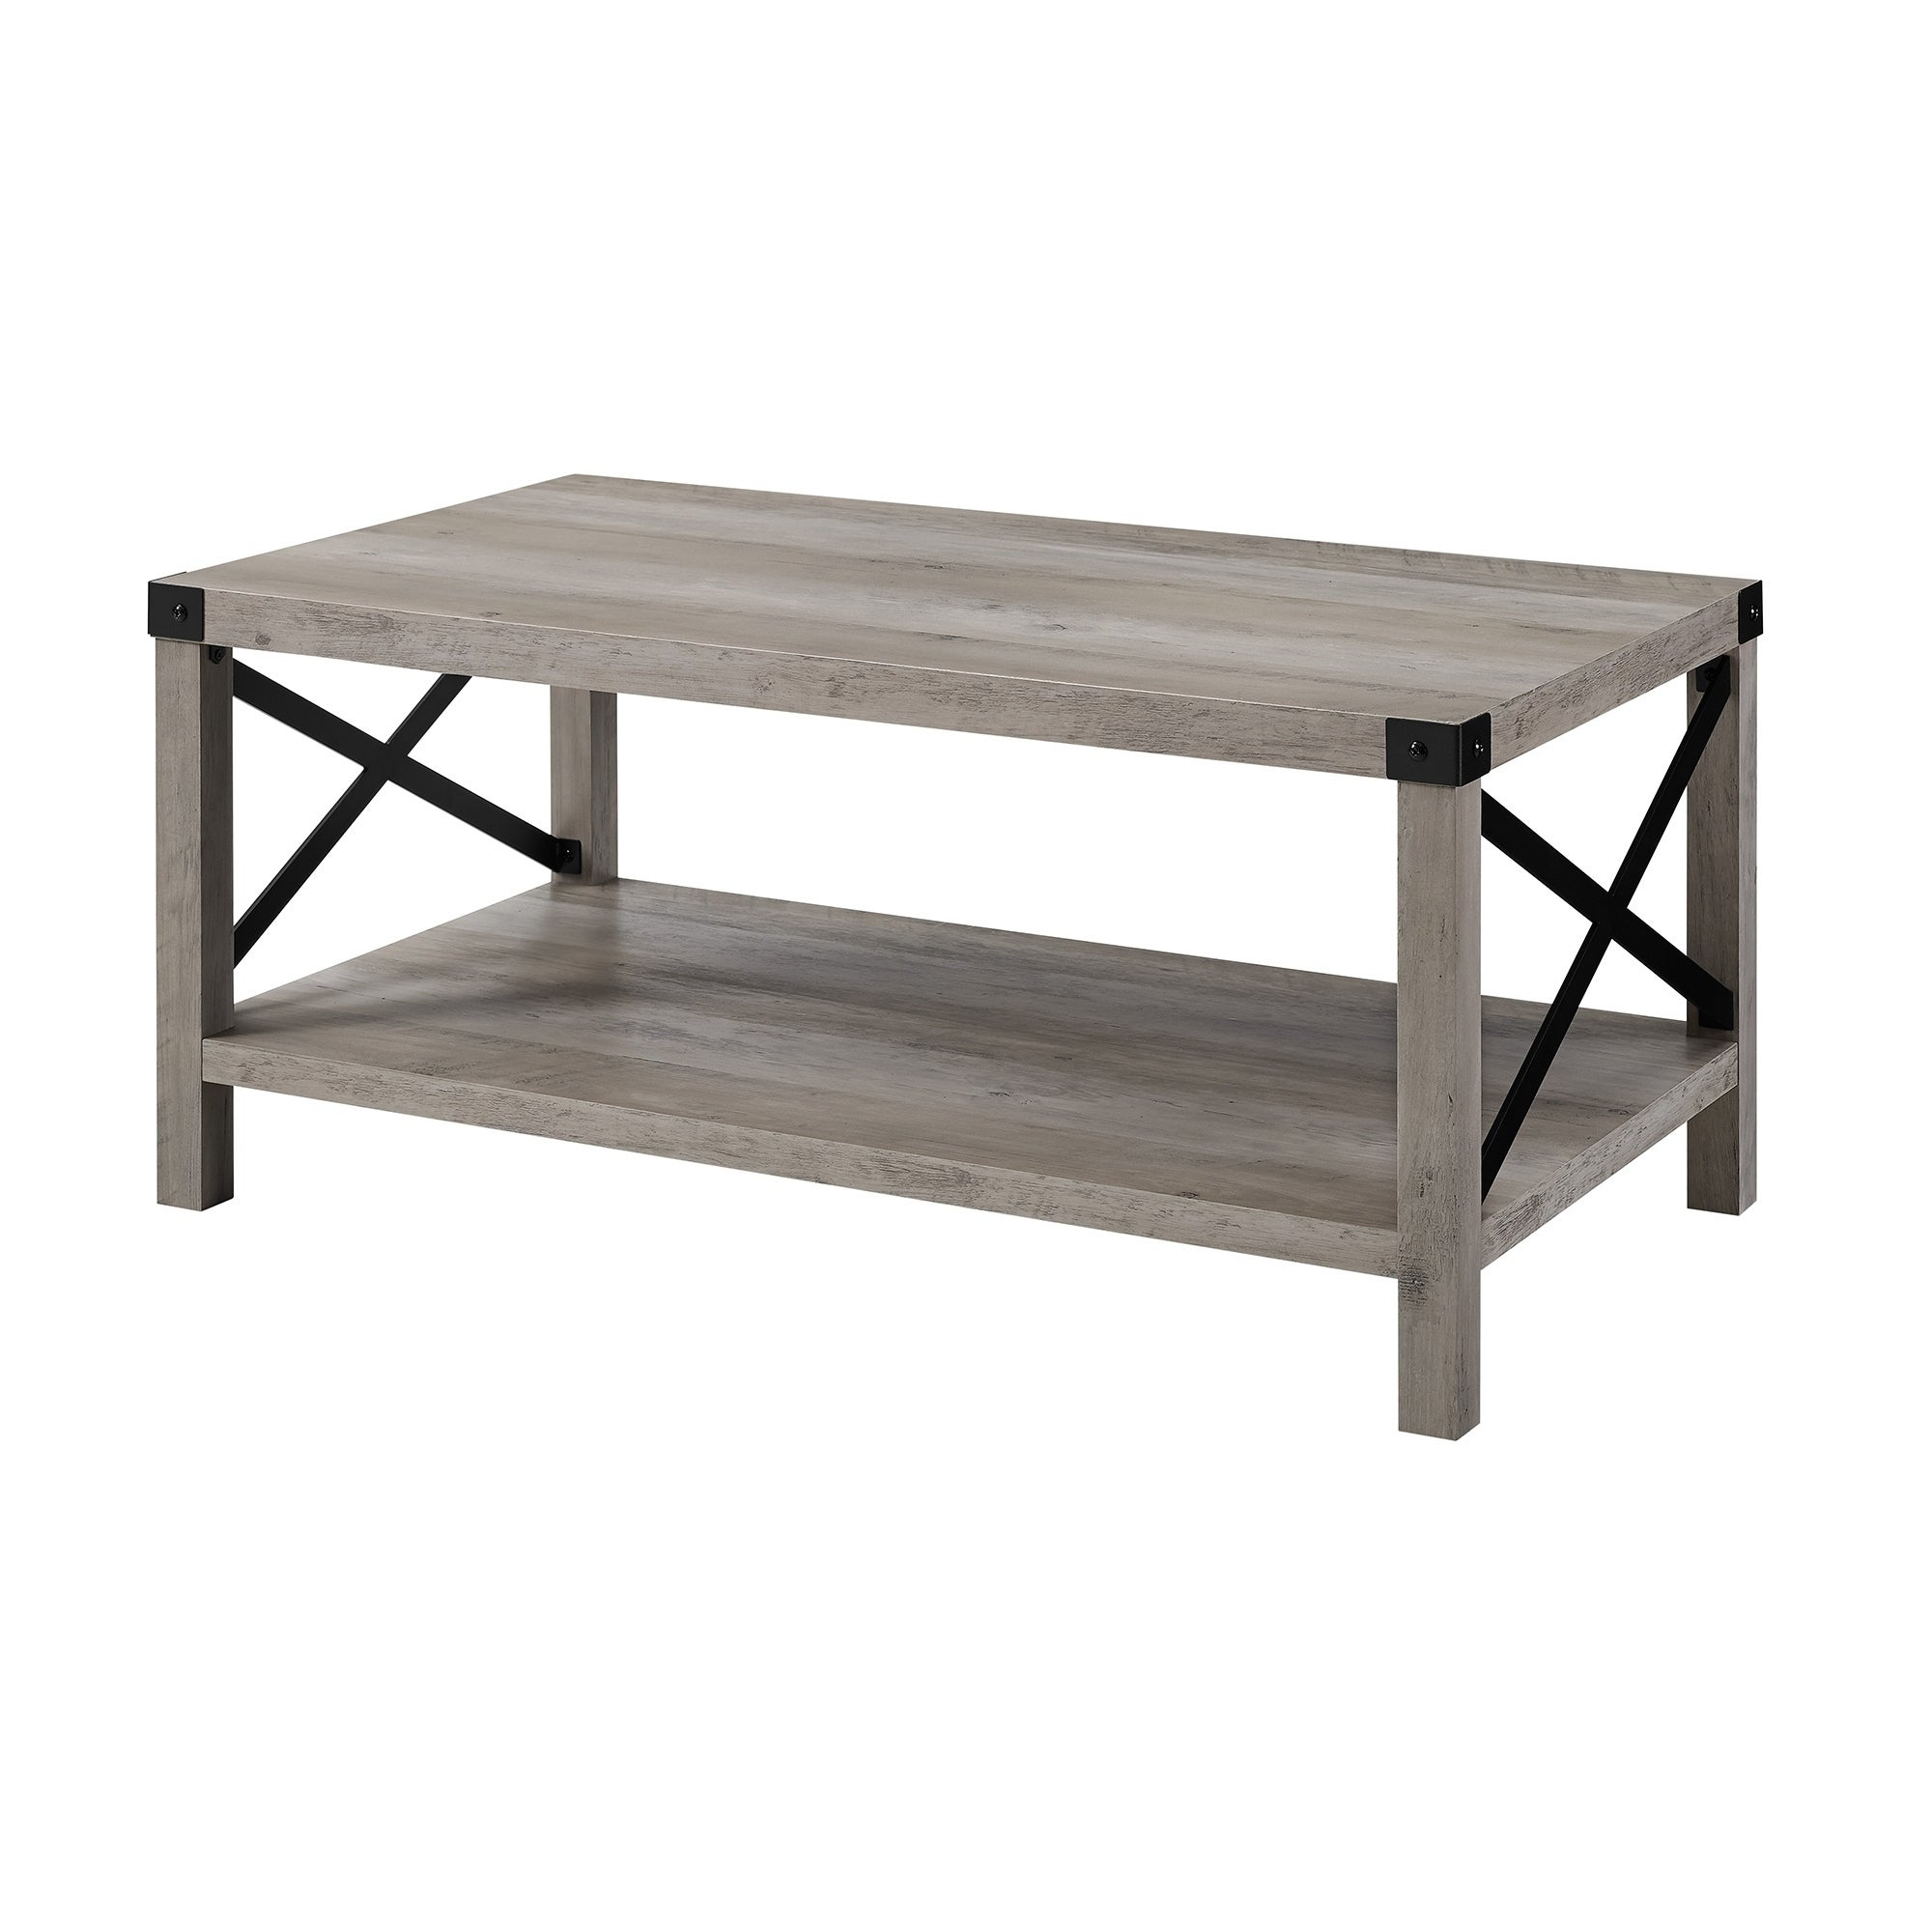 Popular The Gray Barn Kujawa Metal X Coffee Tables – 40 X 22 X 18h Within The Gray Barn Kujawa Metal X Coffee Table – 40 X 22 X 18h (View 2 of 20)